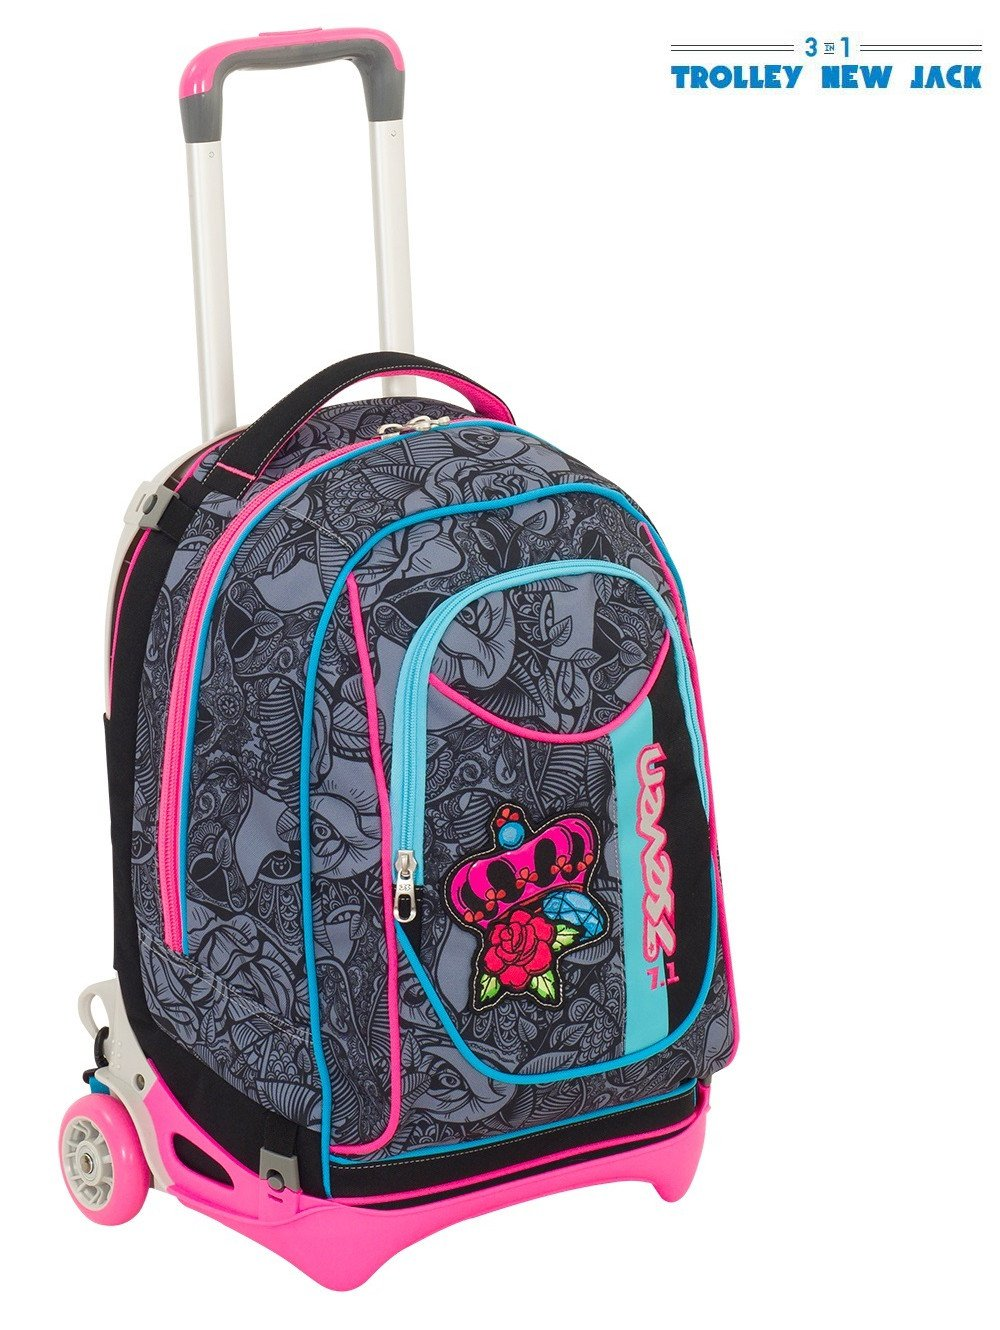 Seven Trolley New Jack - ROSES GIRL -